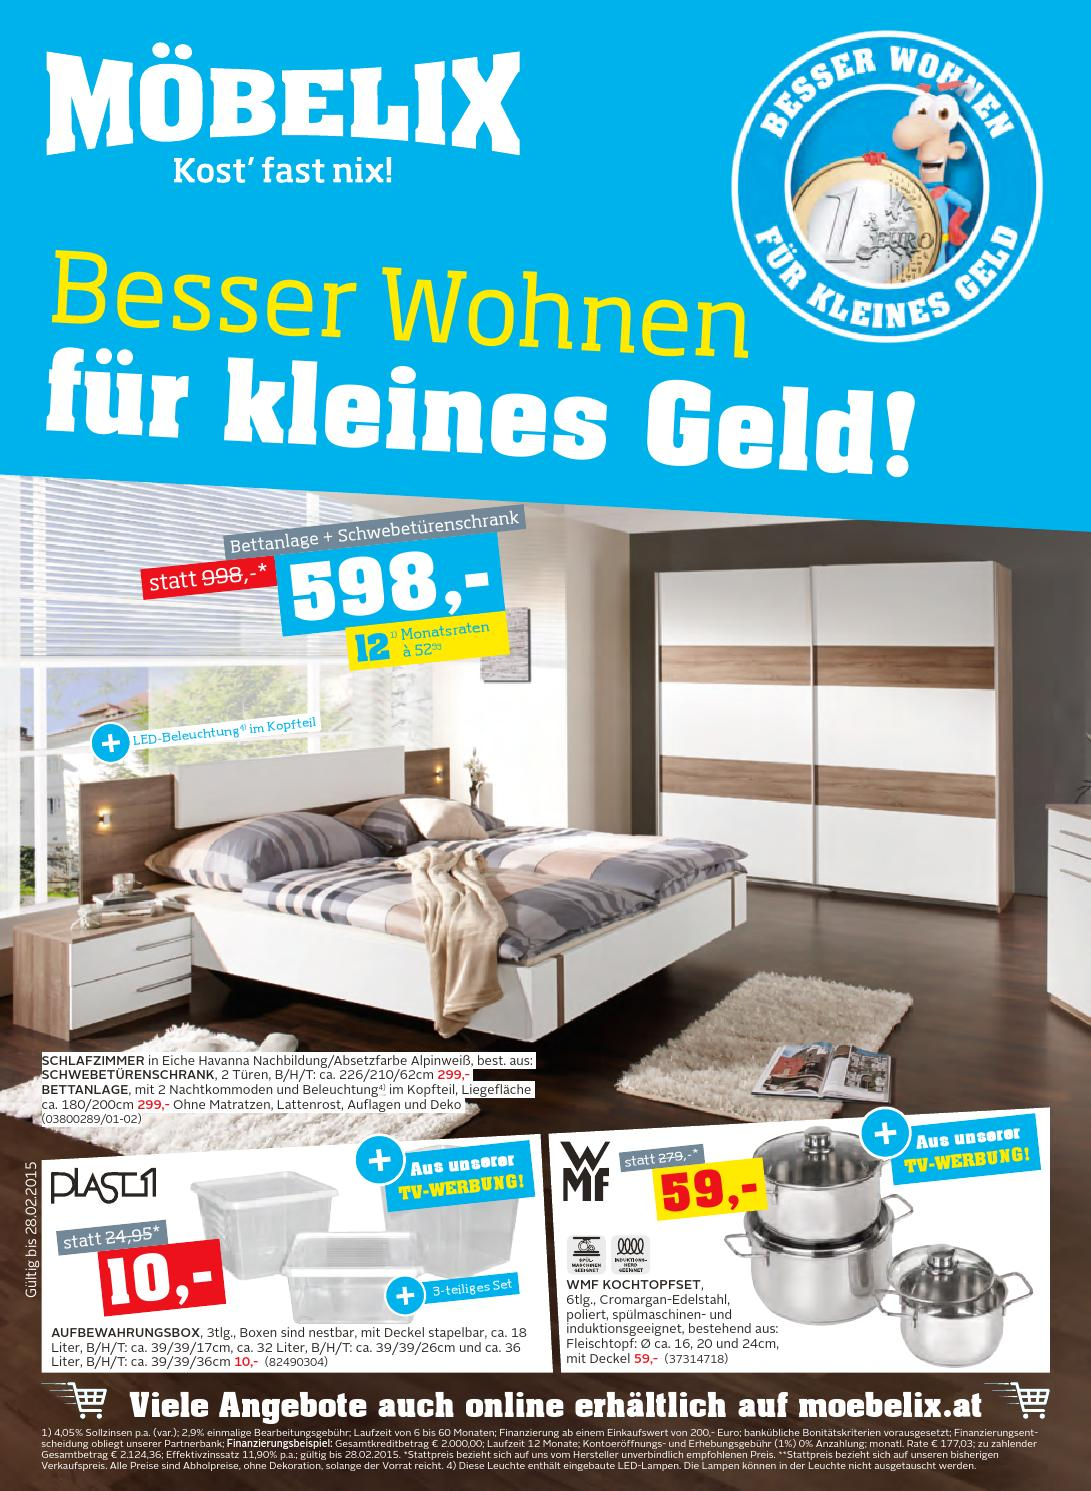 Moebelix Angebote 16 28feber2015 By Promoangebote At Issuu